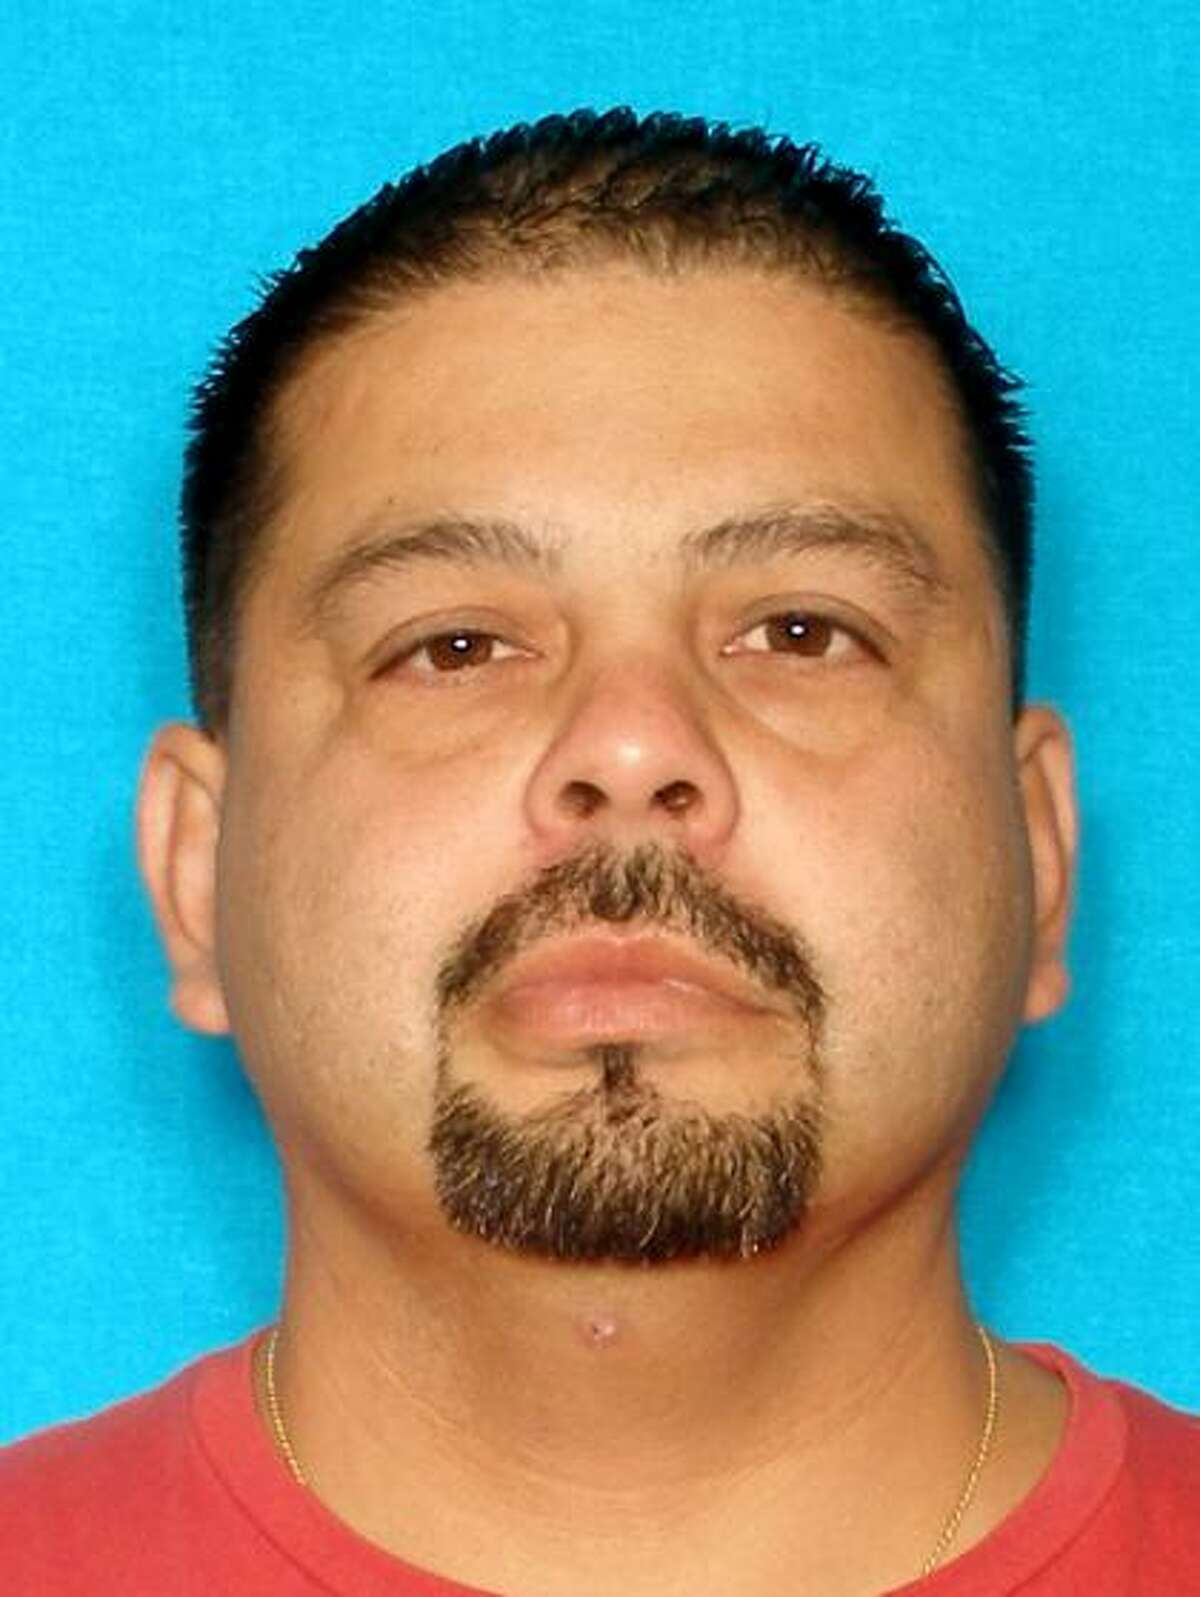 Raul Ambrosio Jimenez, Jr.: Up To $10,000 Reward Wanted For: Sexual Assault of a Child, Traffic of Person under 18 - Prostitution and Probation Violation (Original Offense: Manufacture/Delivery of Heroin) Gang: Texas Syndicate Raul Ambrosio JIMENEZ, Jr.., is identified as a member of the Texas Syndicate gang from the San Antonio, Texas area and has relatives in the Bexar County vicinity. He has a lengthy criminal history dating back to 1987, with arrests for Prostitution, Burglary, Vehicle Theft, Counterfeiting, Possession of Marijuana, Resisting Officer, and traffic violations.